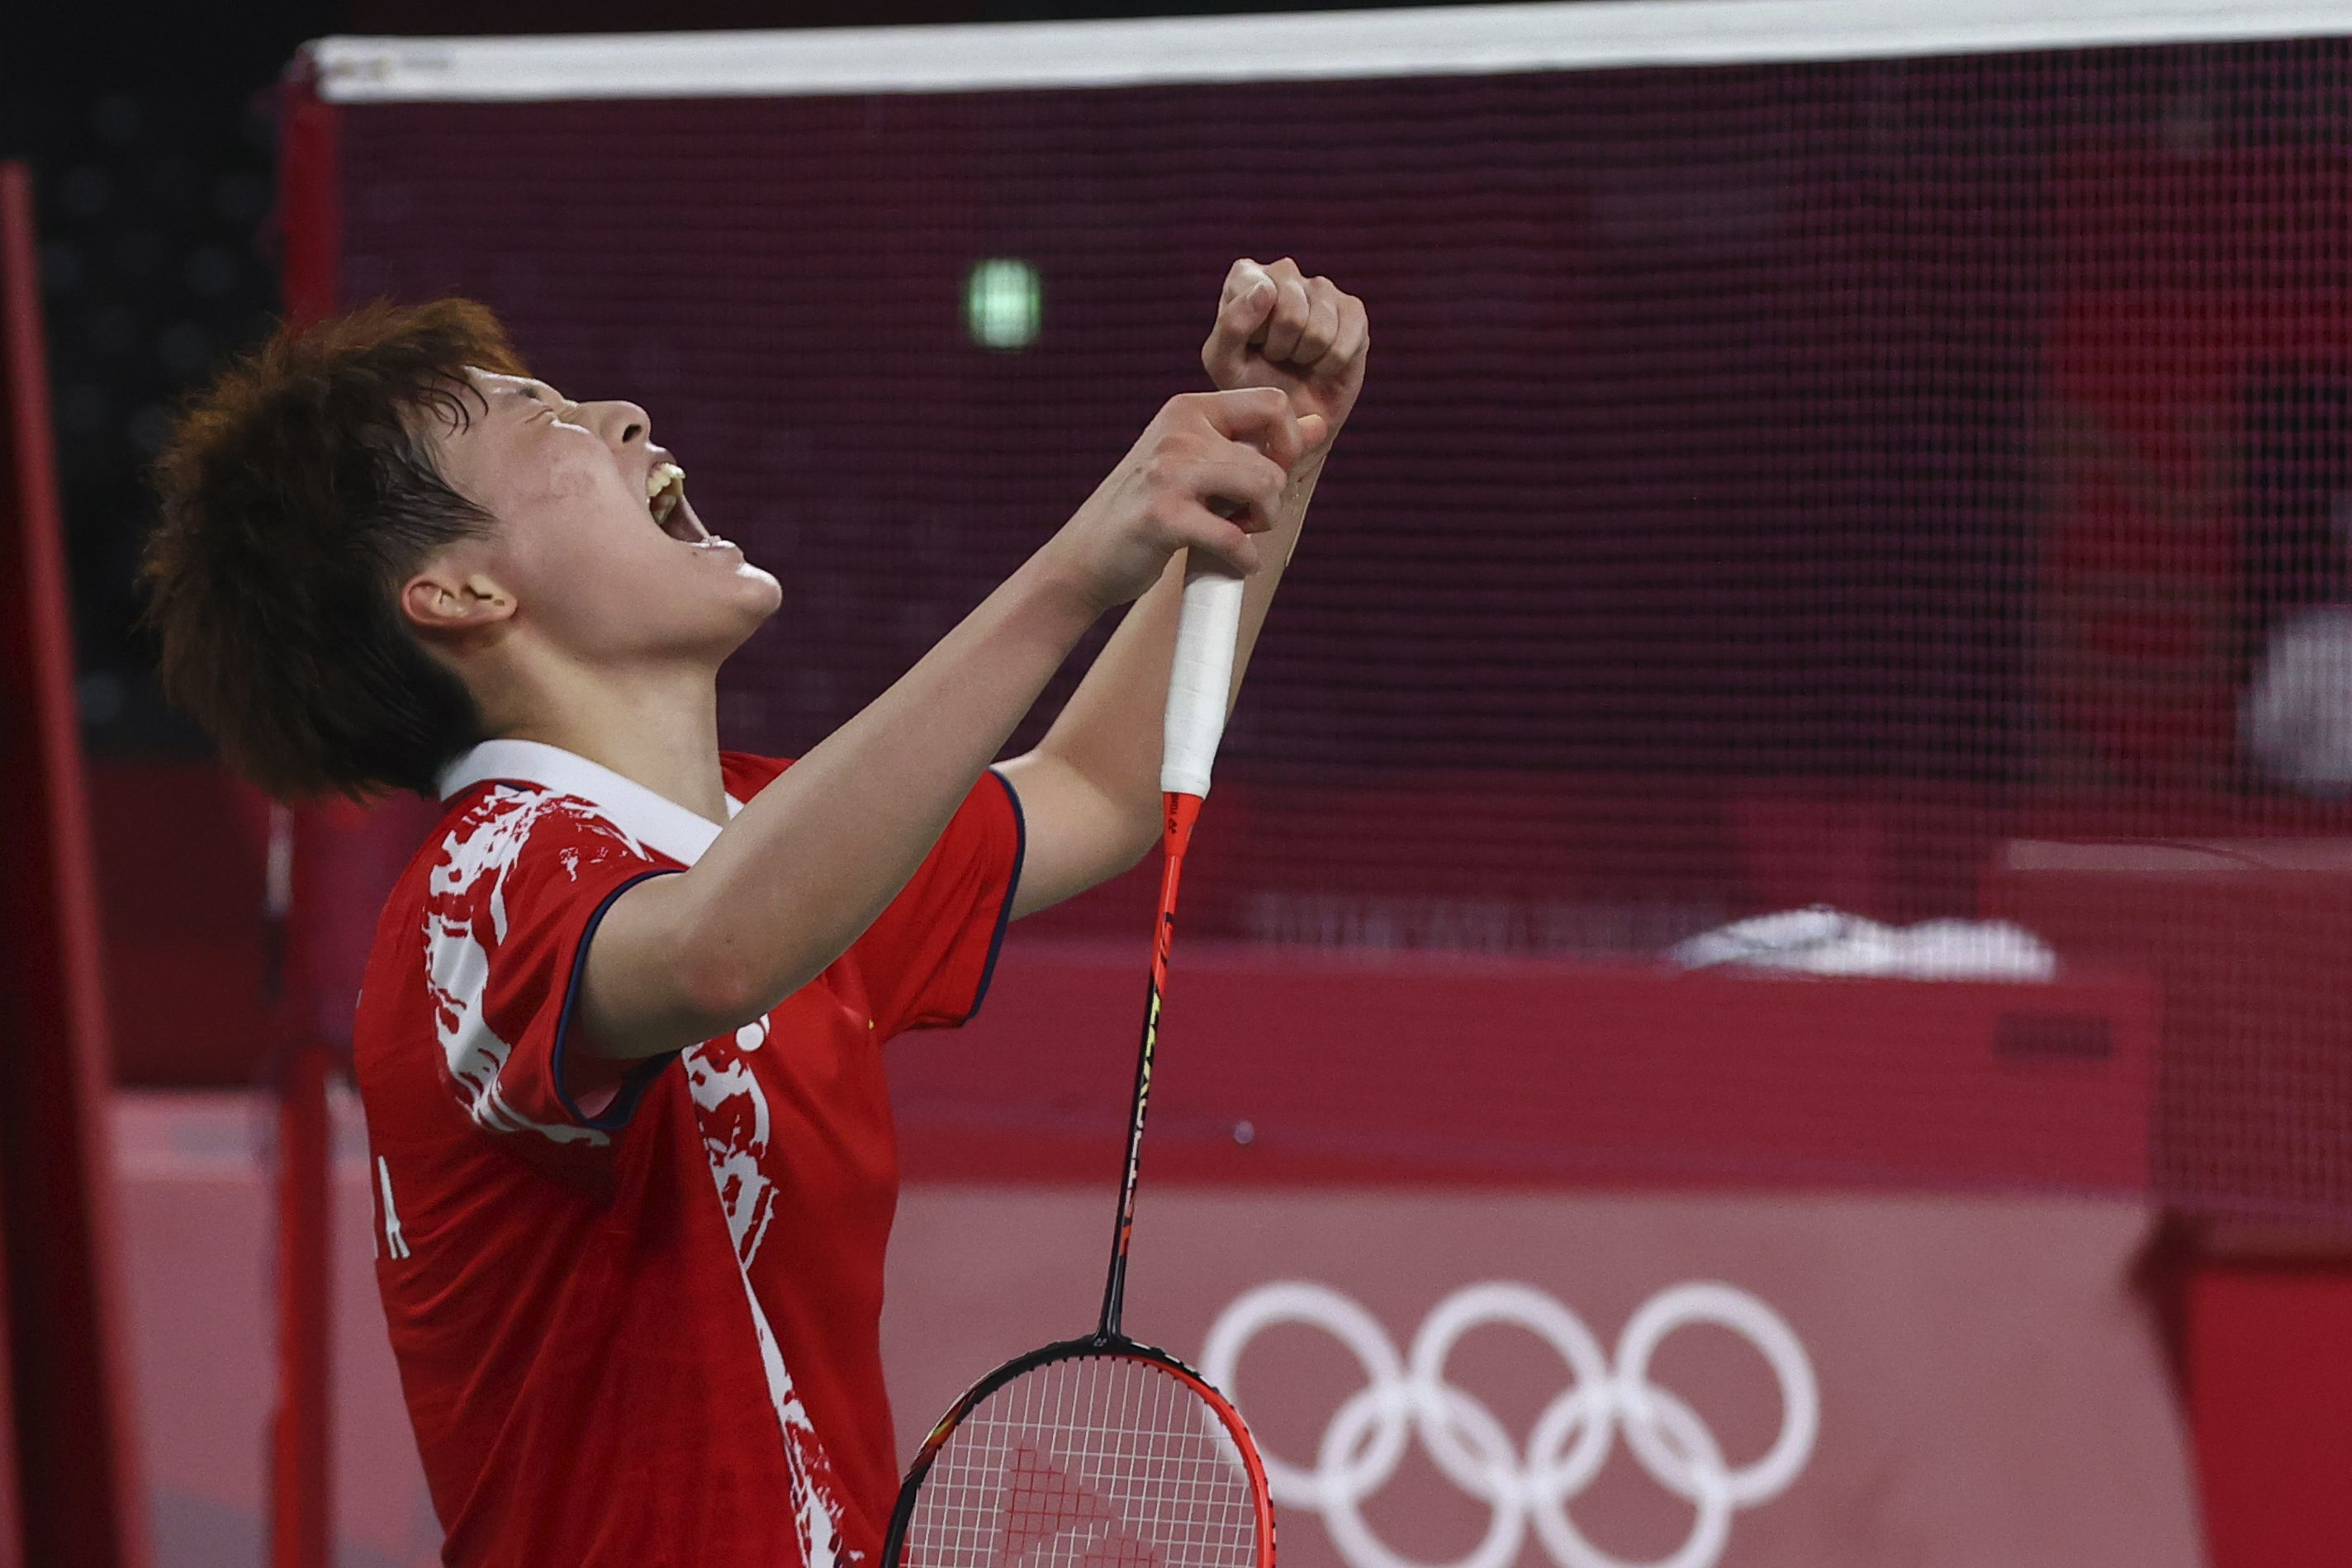 Tokyo 2020 Olympics - Badminton - Women's Singles - Gold medal match - MFS - Musashino Forest Sport Plaza, Tokyo, Japan – August 1, 2021.  Chen Yufei of China reacts after winning the match against Tai Tzu-Ying of Taiwan. REUTERS/Leonhard Foeger